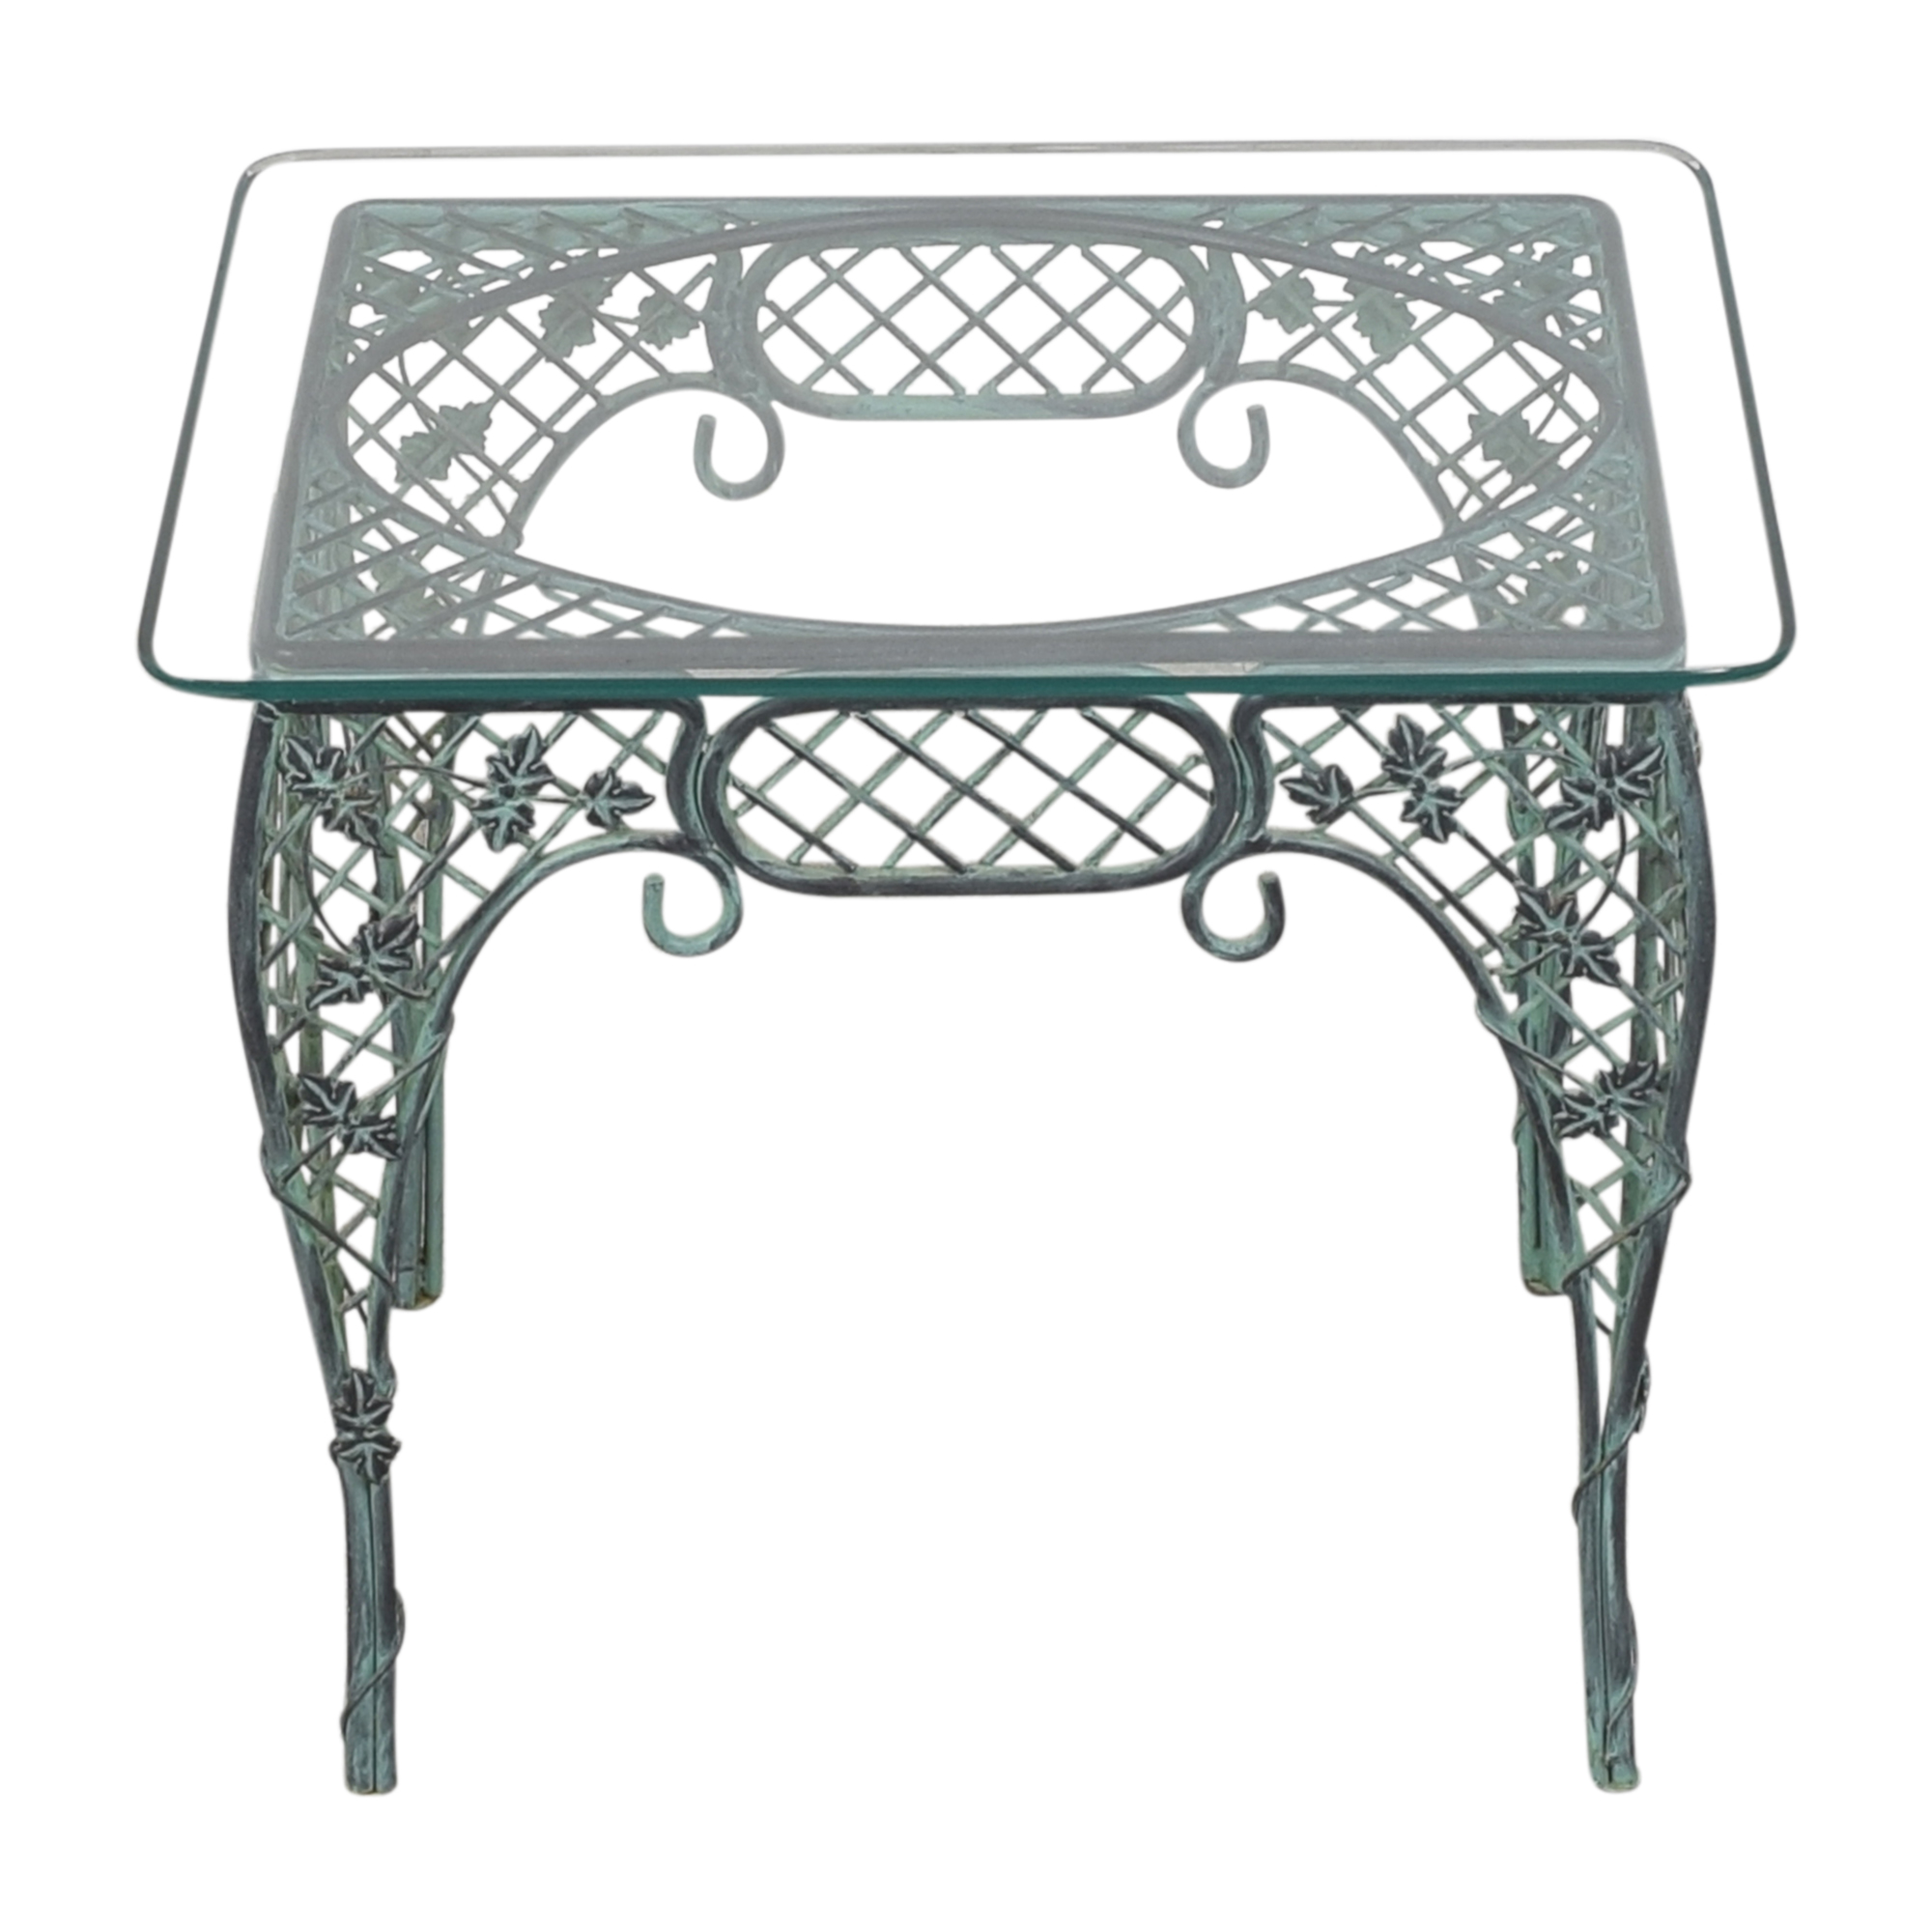 Huffman Koos Decorative Accent Table / Accent Tables